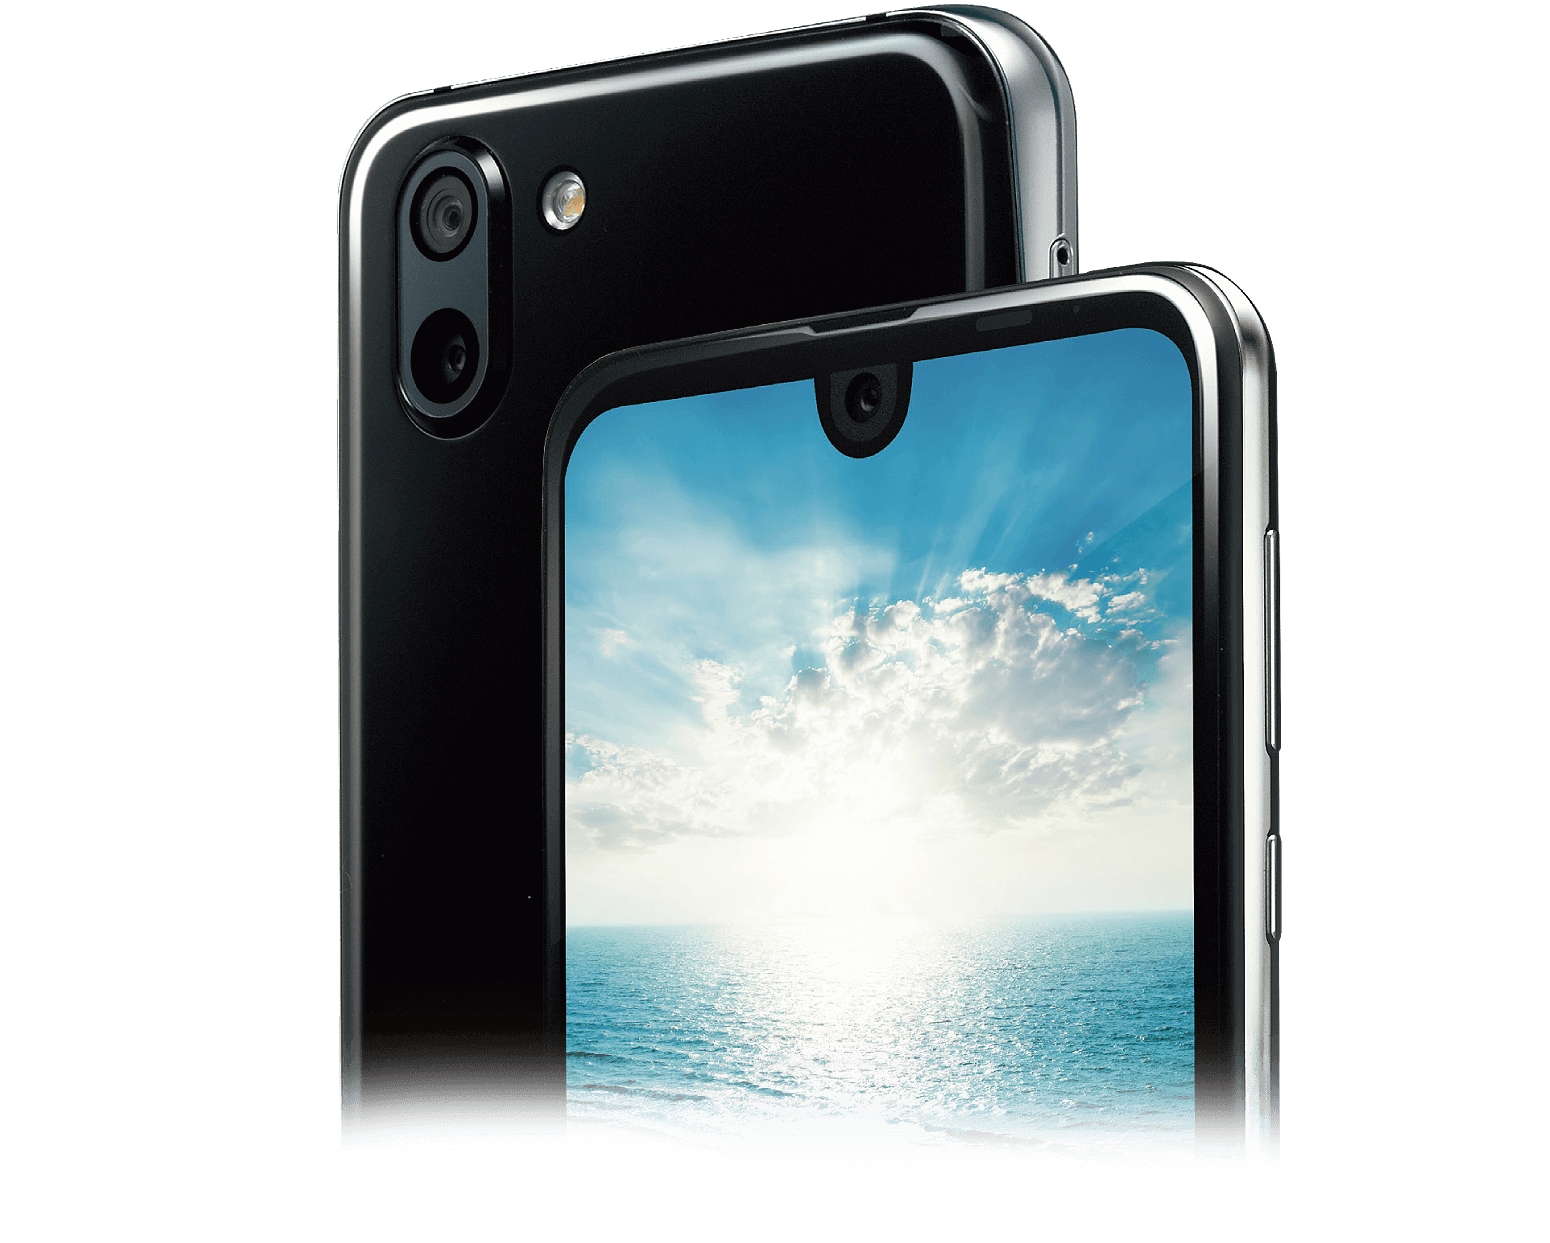 Smartphone, Feature phone, Product design, Multimedia, Mobile Phone Accessories, Product, Cellular network, iPhone, Electronics, Design, smartphone, mobile phone, gadget, product, technology, product, communication device, electronic device, smartphone, product design, portable communications device